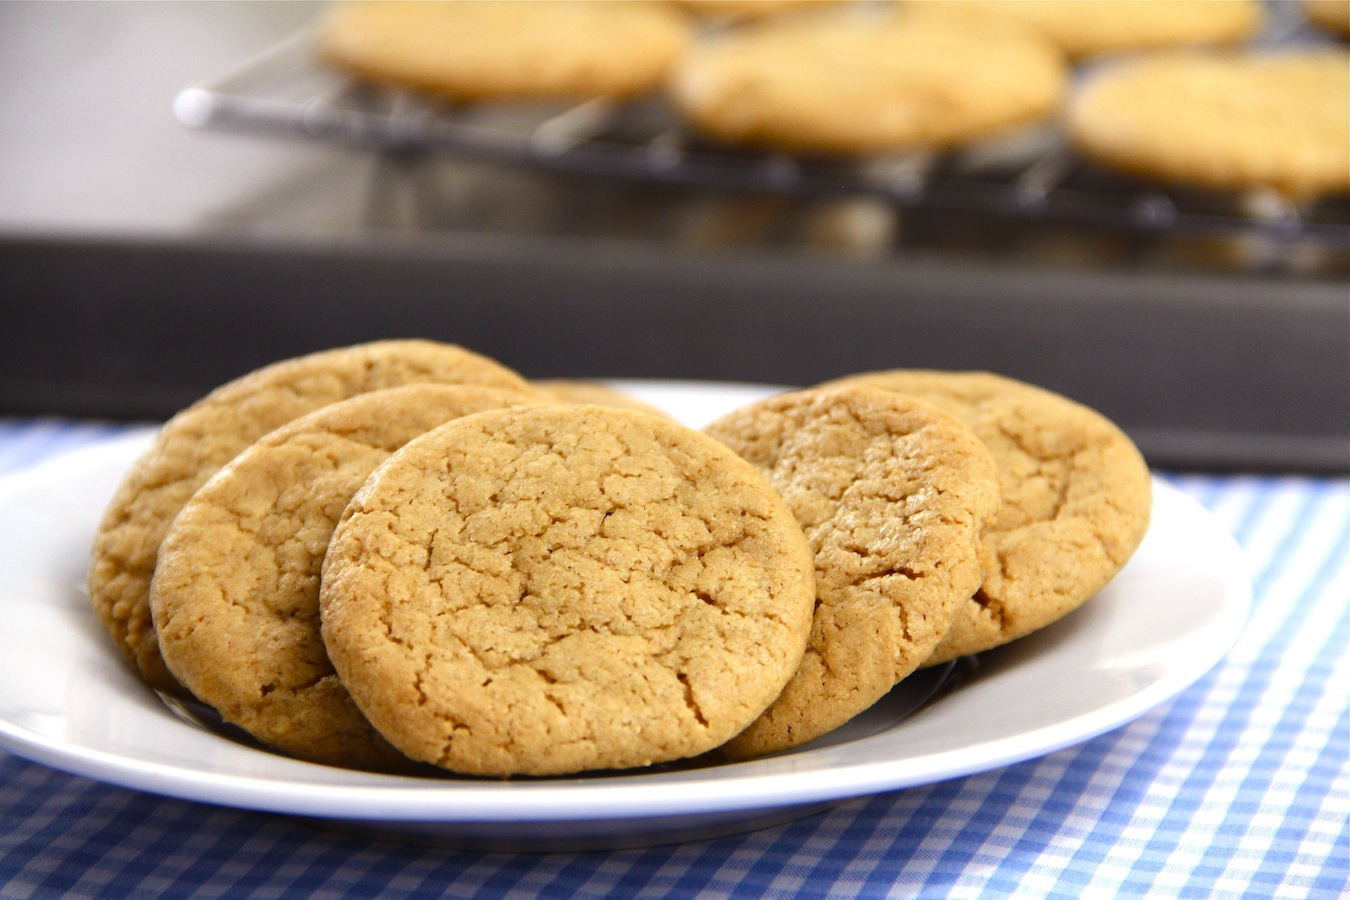 gluten-free dairy-free peanut butter cookies